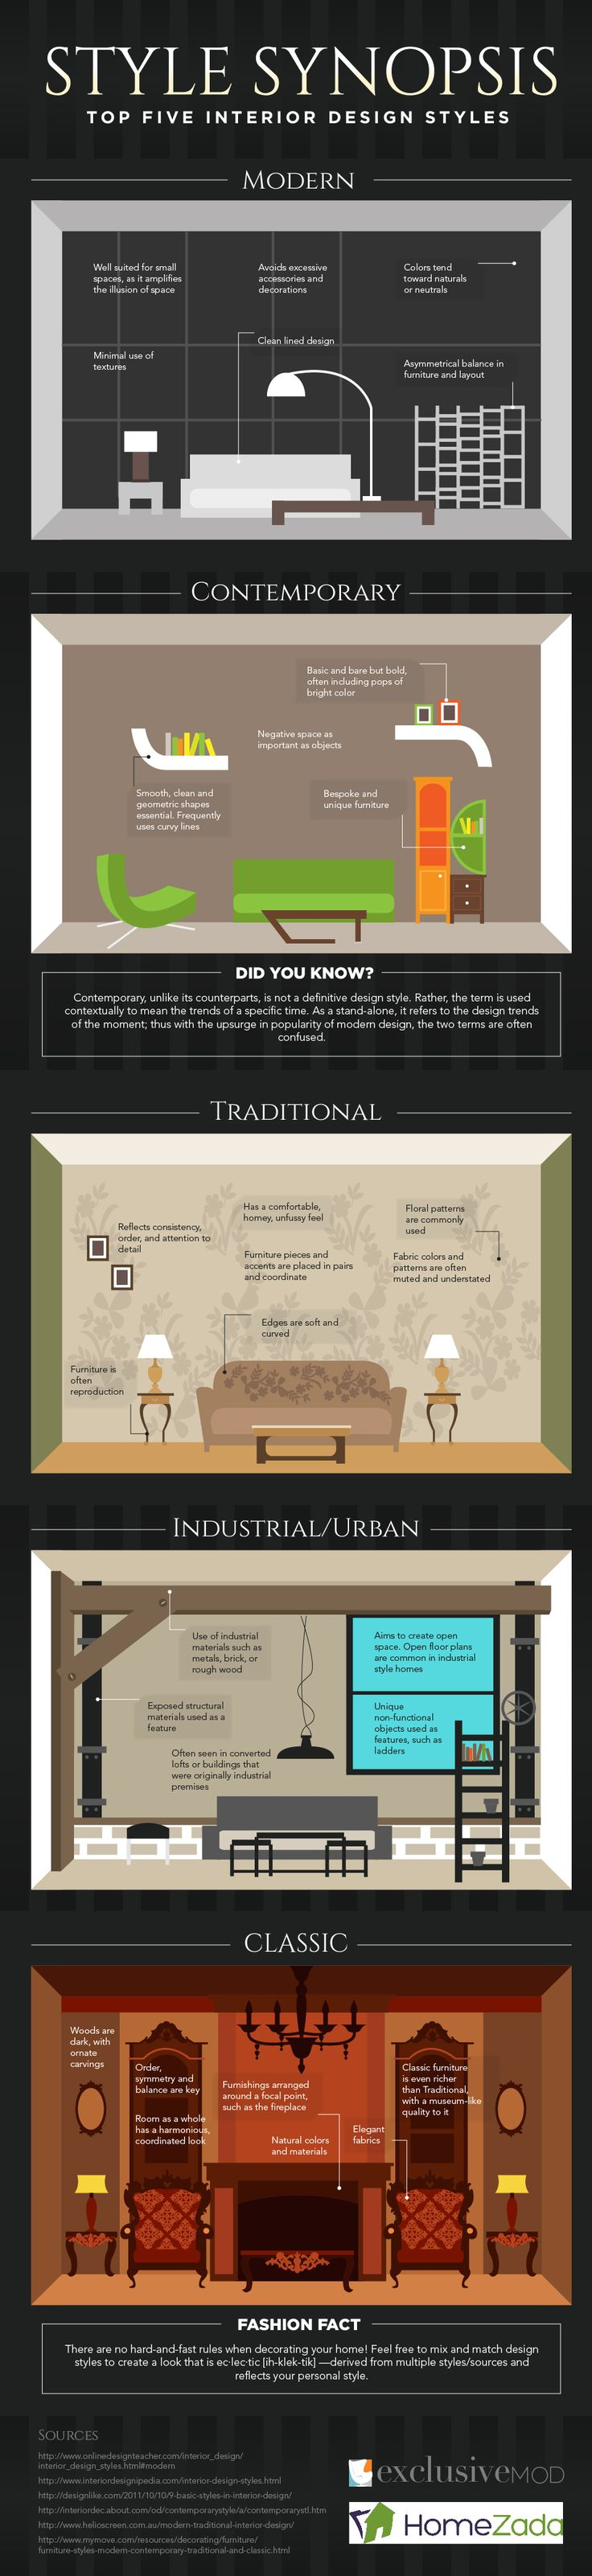 Top Five Interior Design Styles: